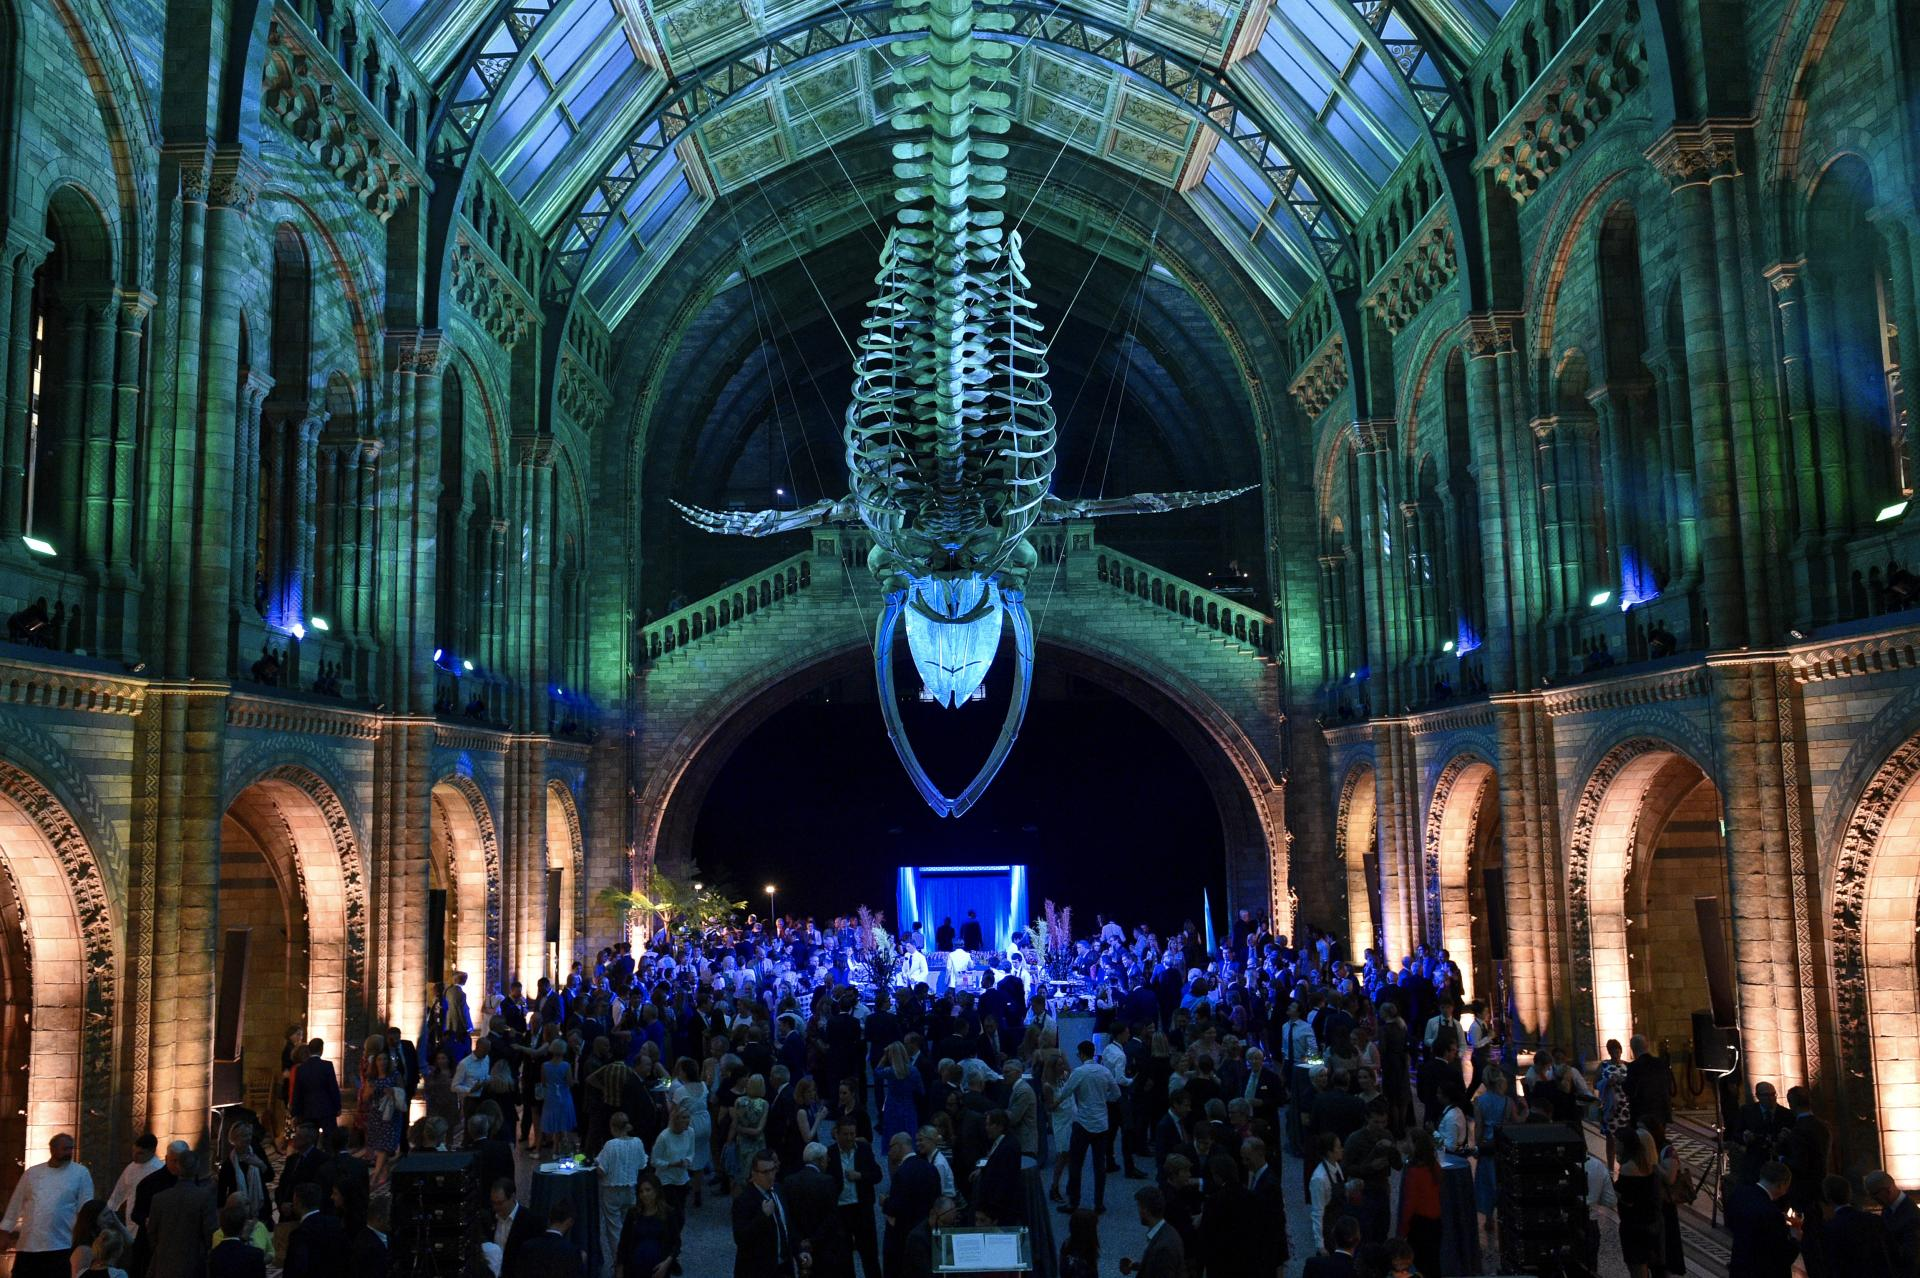 Friday Nights At The Natural History Museum